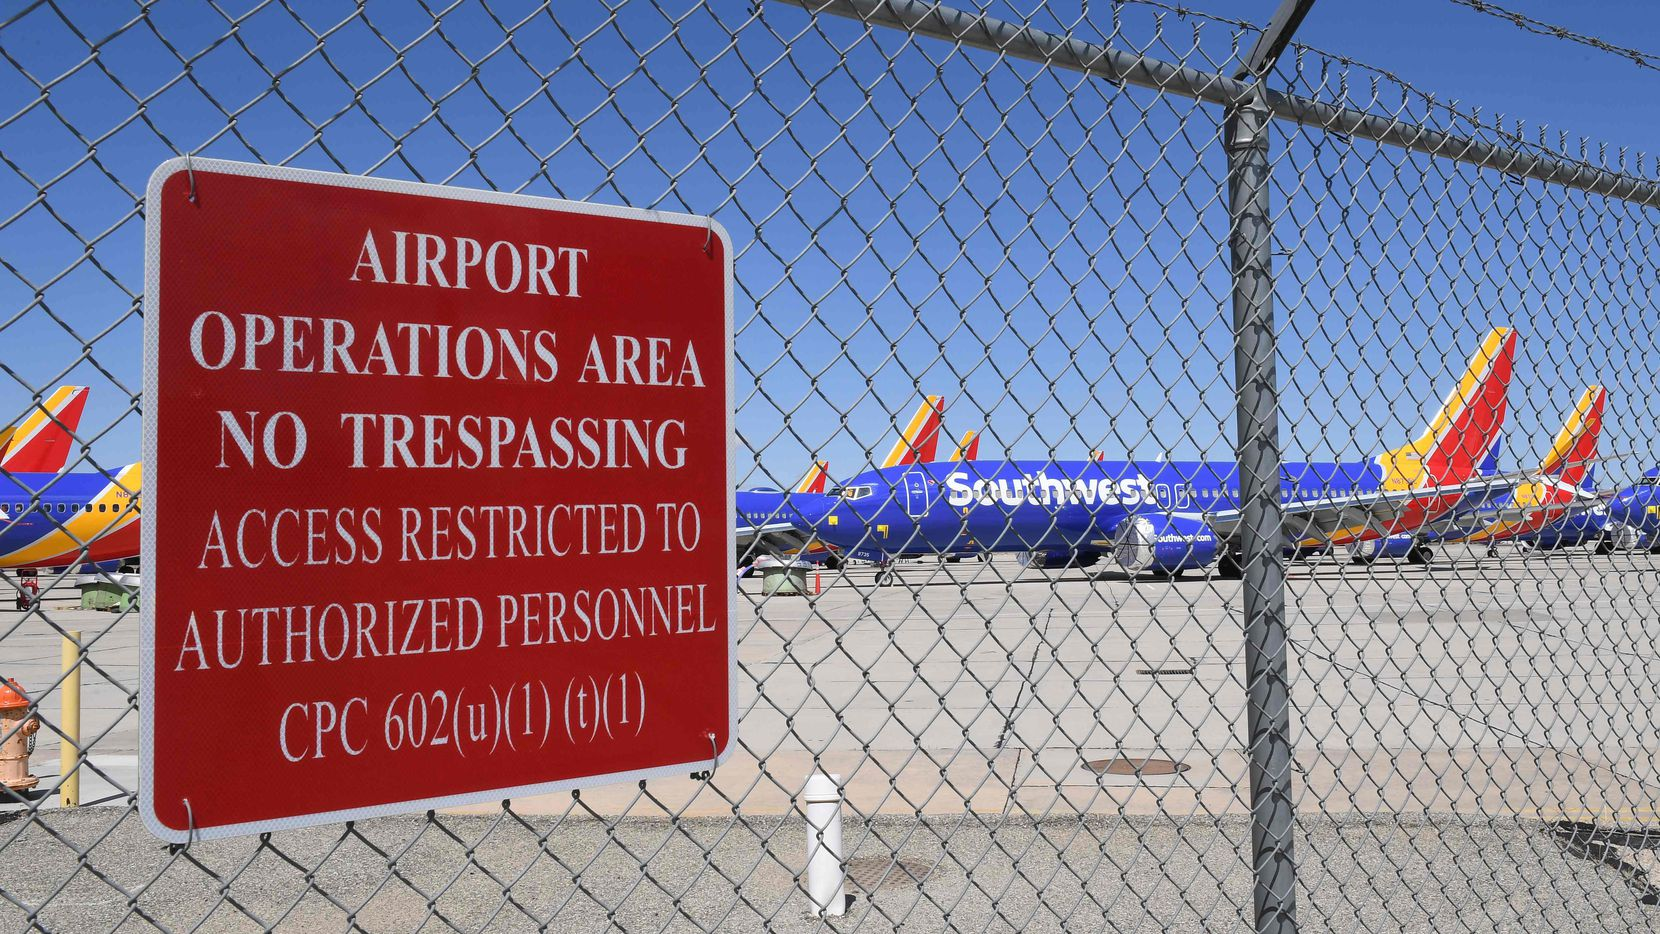 Southwest Airlines' Boeing 737 MAX aircrafts are parked on the tarmac at the Southern California Logistics Airport in Victorville, California on March 28, 2019. U.S. aircraft maker Boeing unveiled an upgraded for the MCAS flight software that originally grounded the aircrafts following two crashes in which nearly 350 people died. Boeing is responding to safety concerns about its top-selling plane, and after hundreds of hours of testing will roll out the fix to the stall-prevention software, once it's been approved by the Federal Aviation Administration. (Photo by Mark RALSTON / AFP)MARK RALSTON/AFP/Getty Images